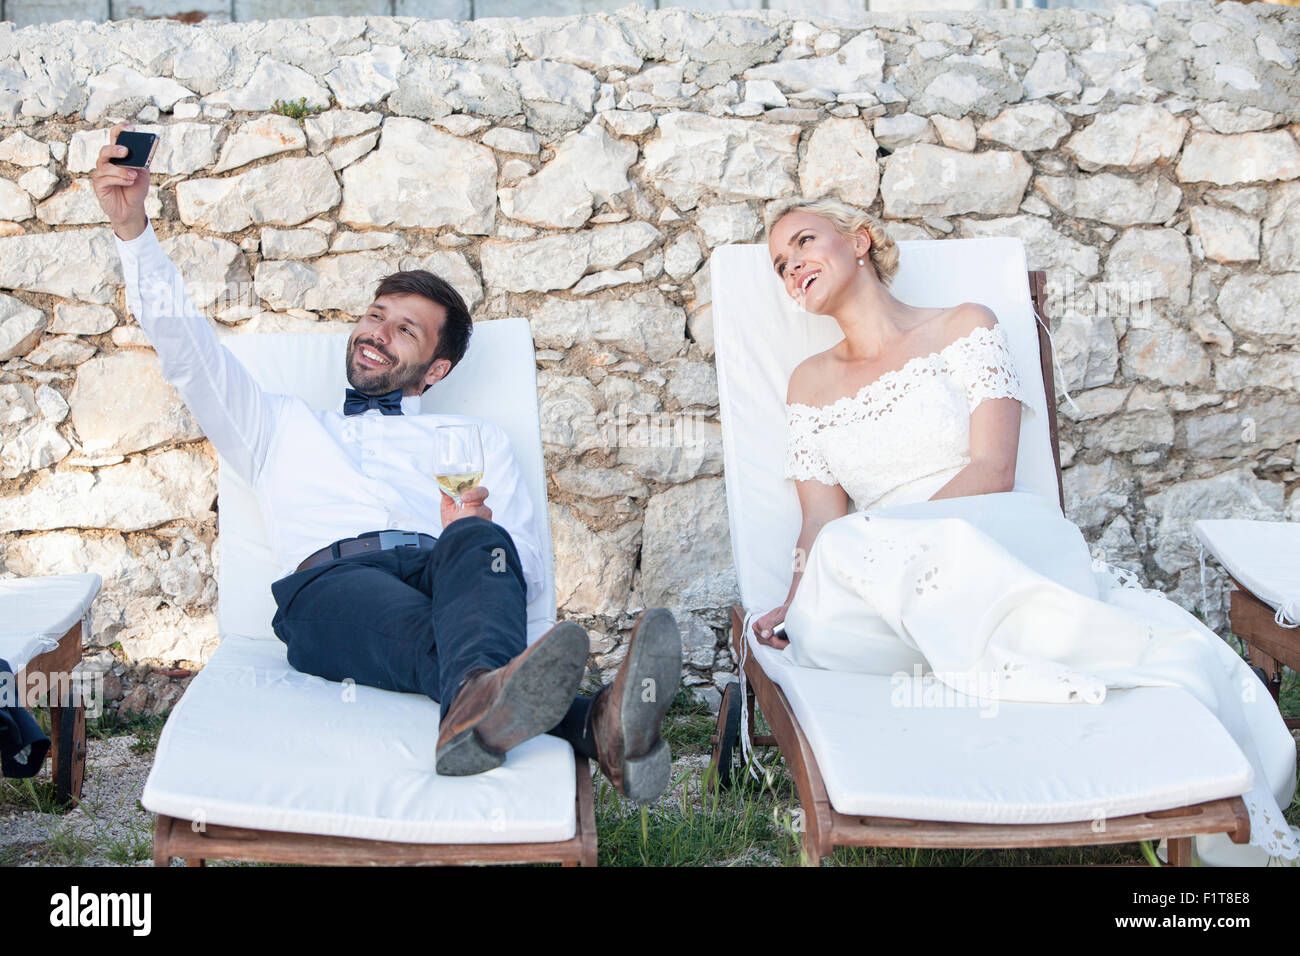 Bridegroom and bride taking photo of themselves - Stock Image